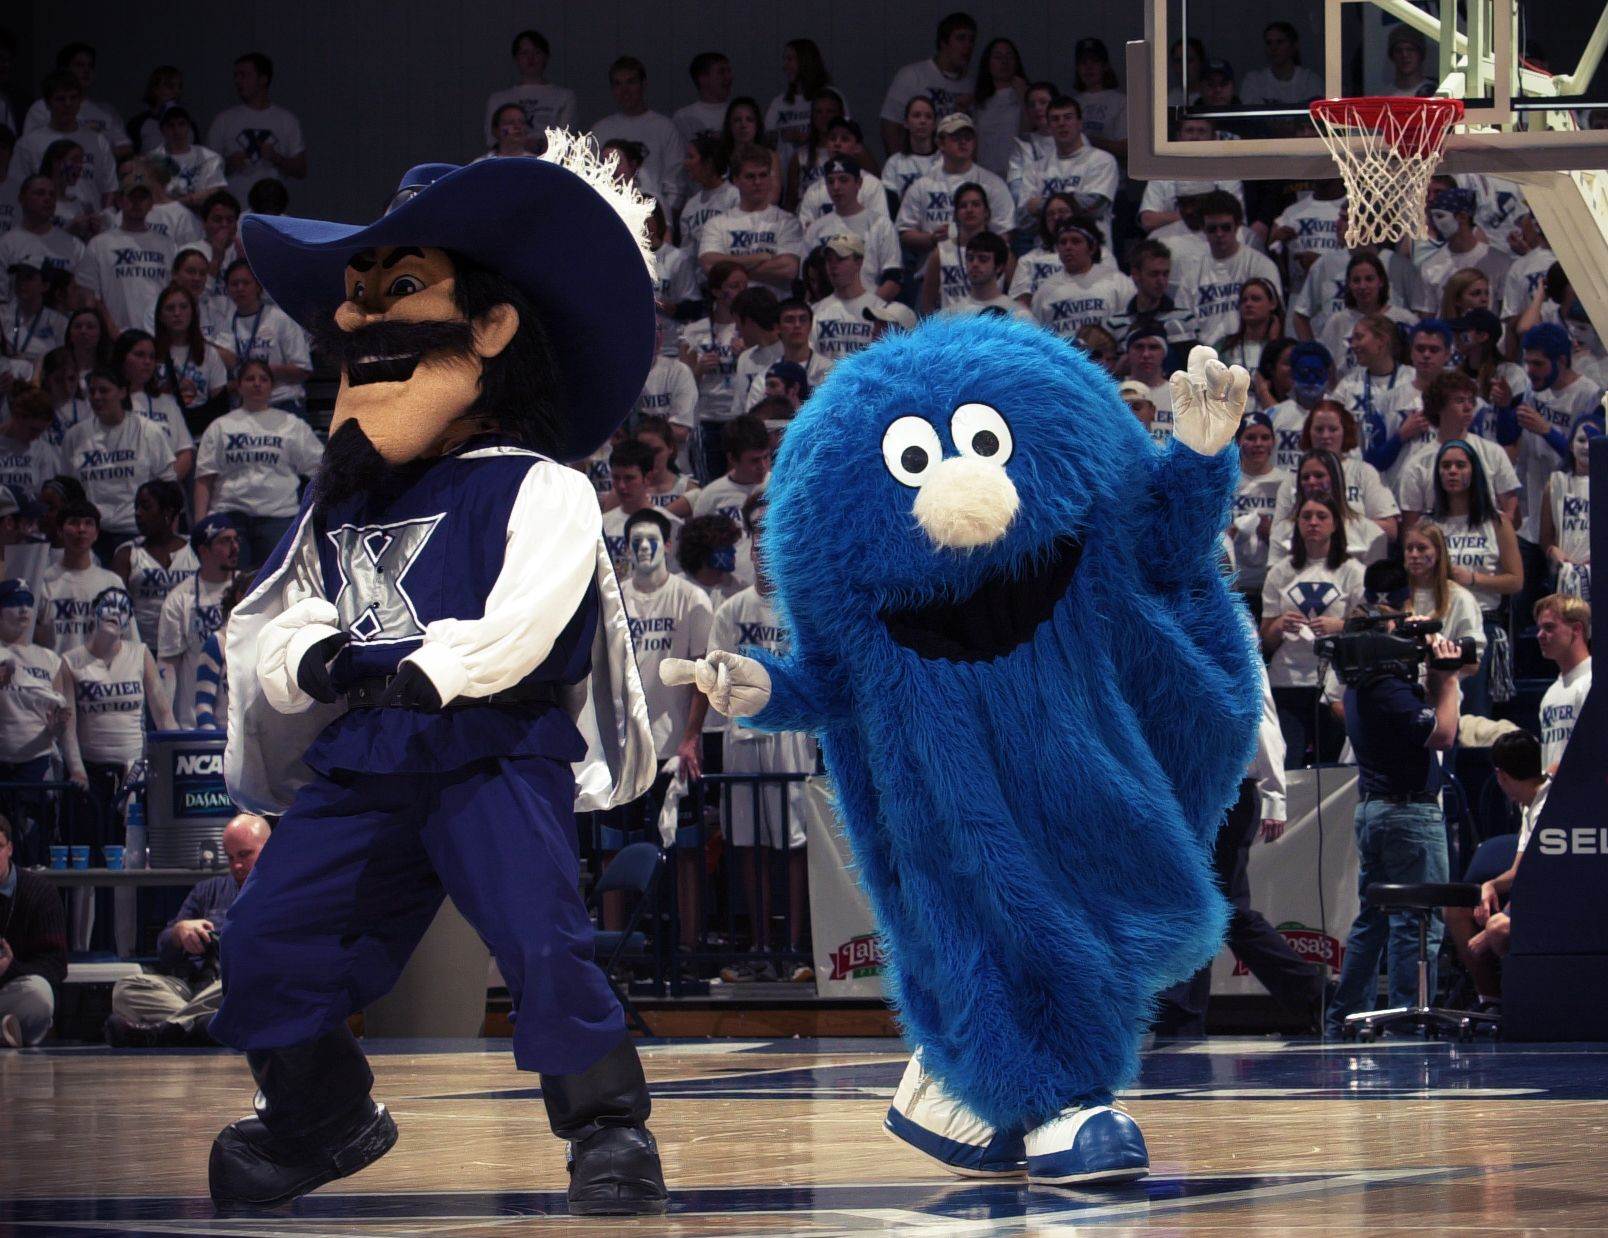 Xavier color printing - The Xavier Blue Blob And Musketeer